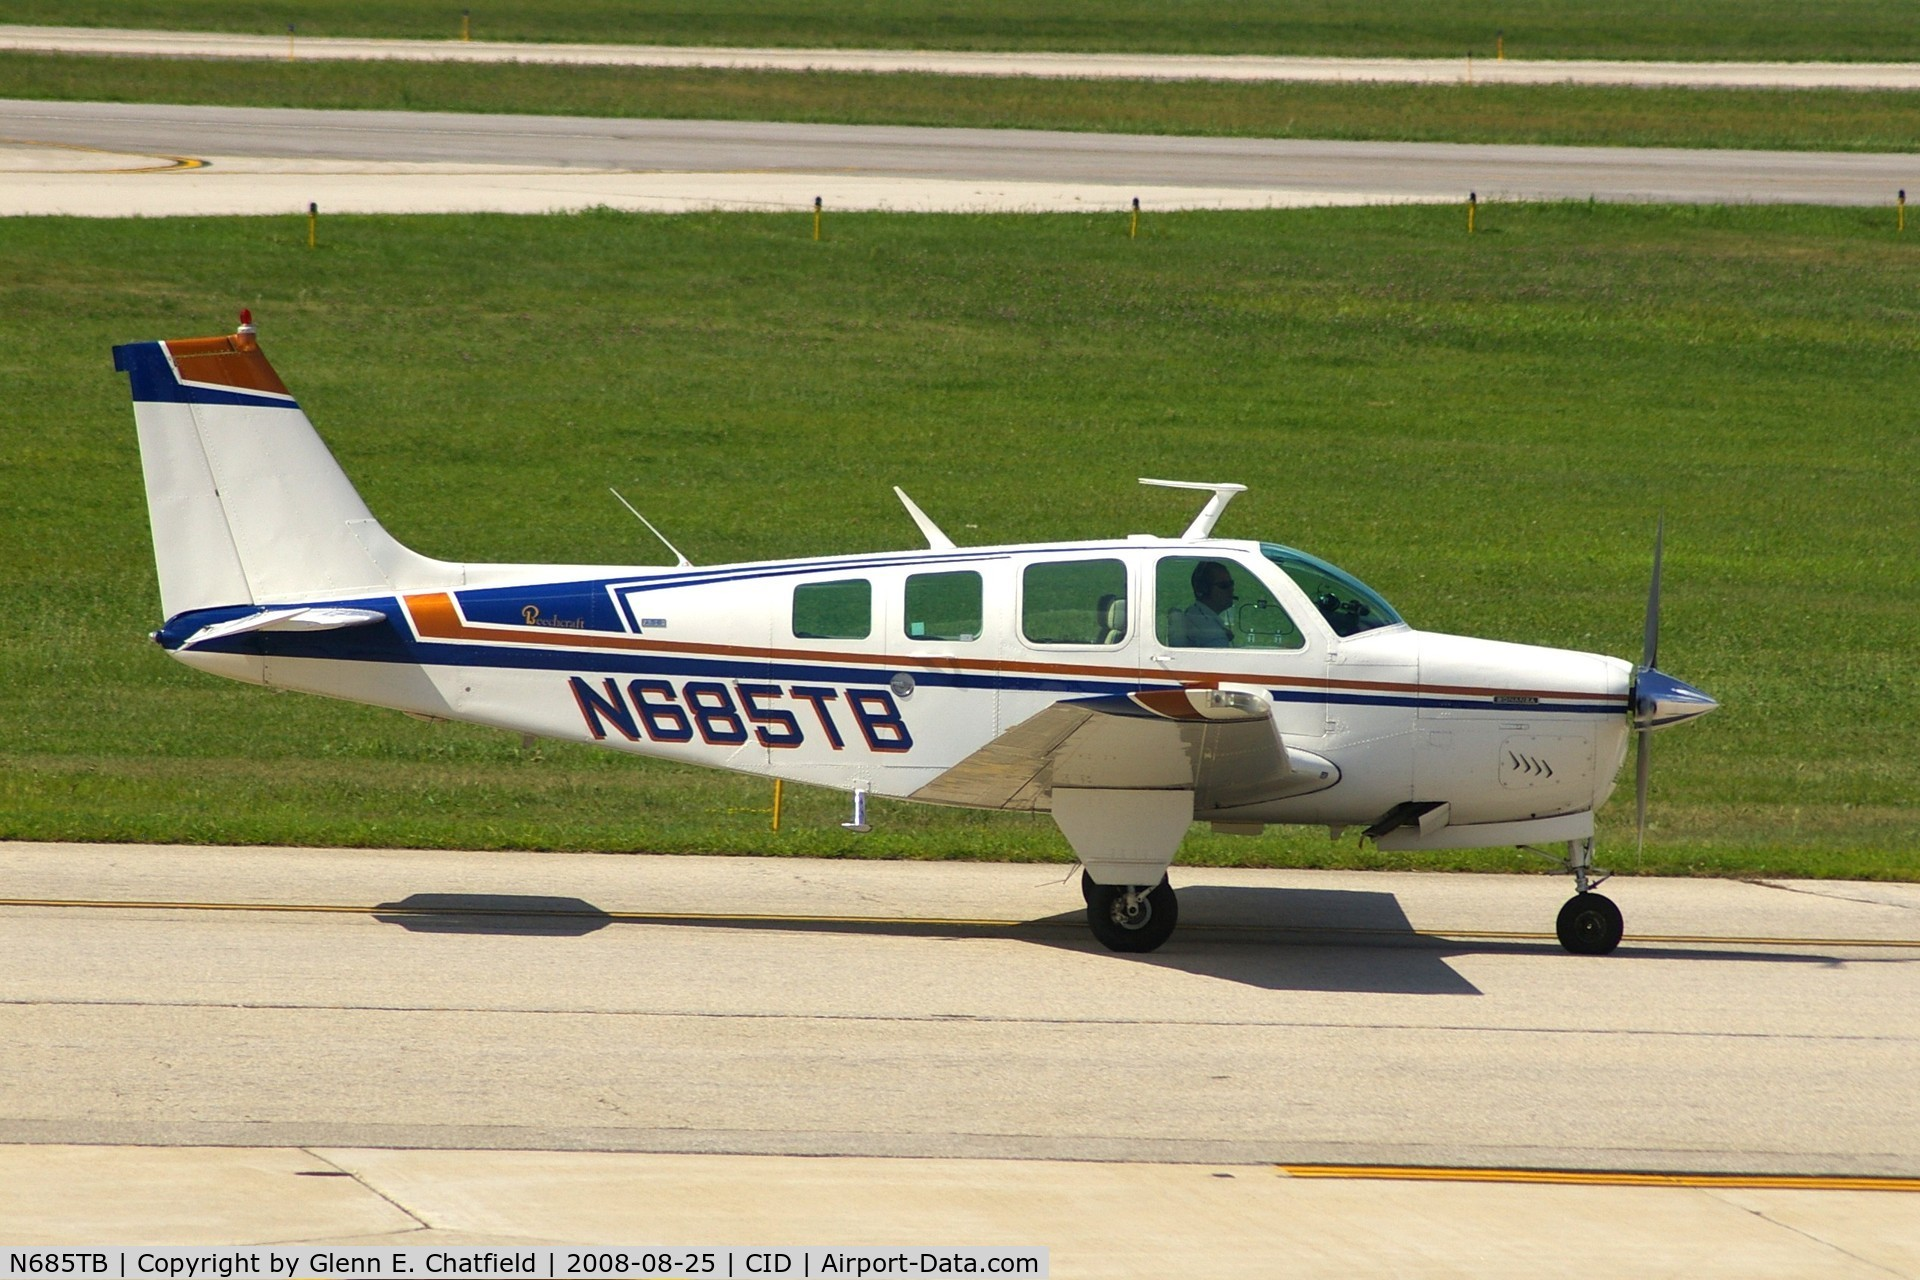 N685TB, 1973 Beech A36 Bonanza 36 C/N E-469, Taxiing past my window on the way to Runway 13